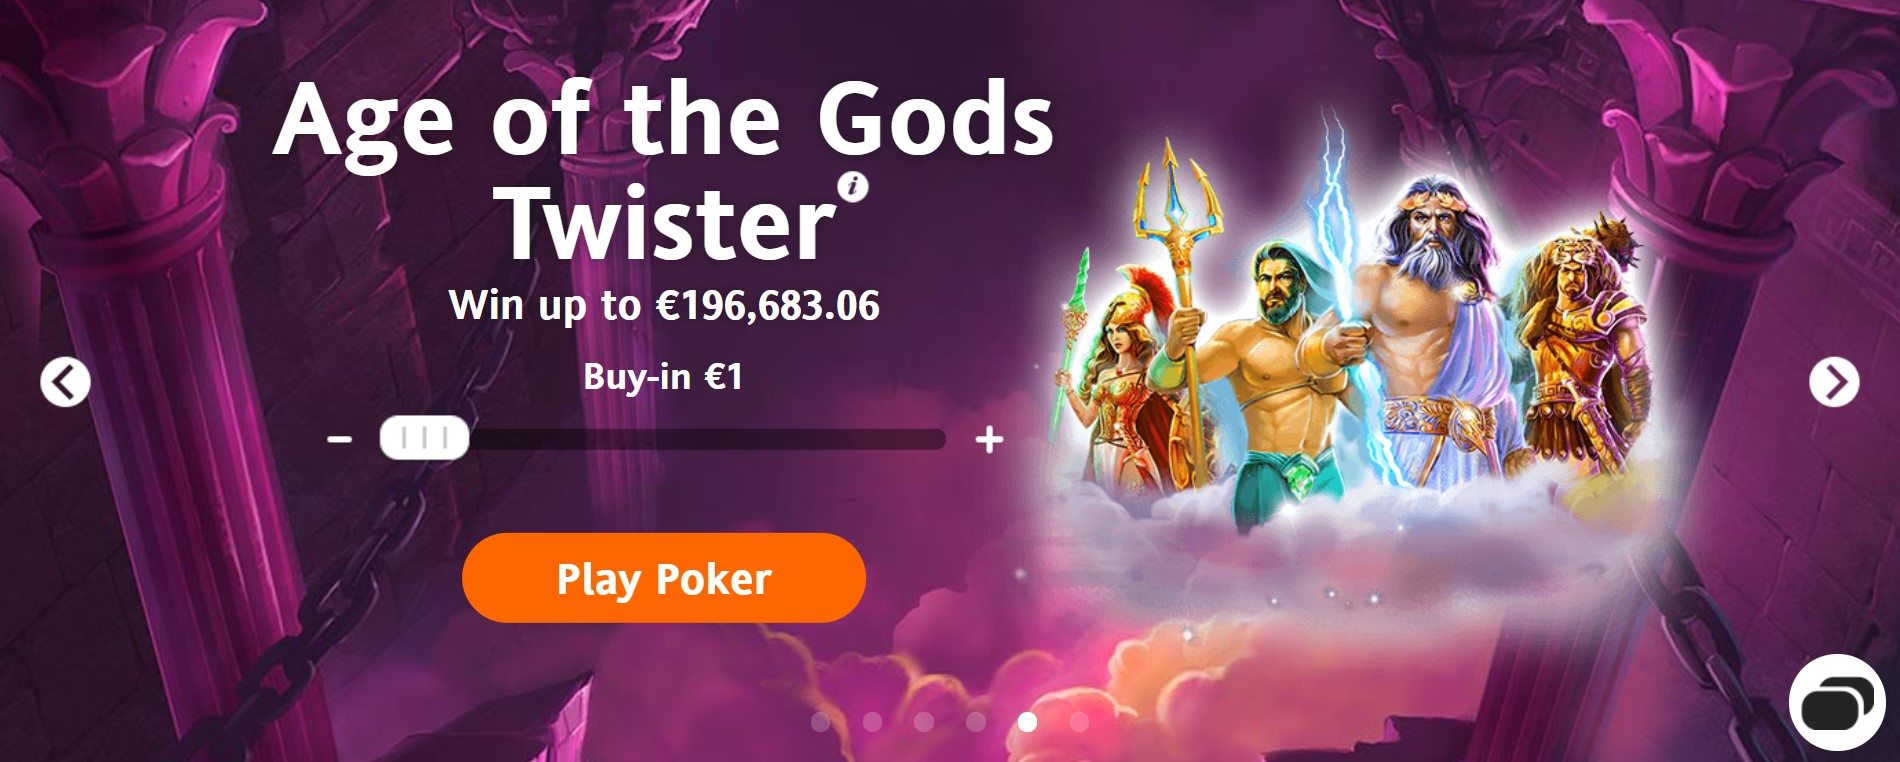 Age of the God Twister Betsson